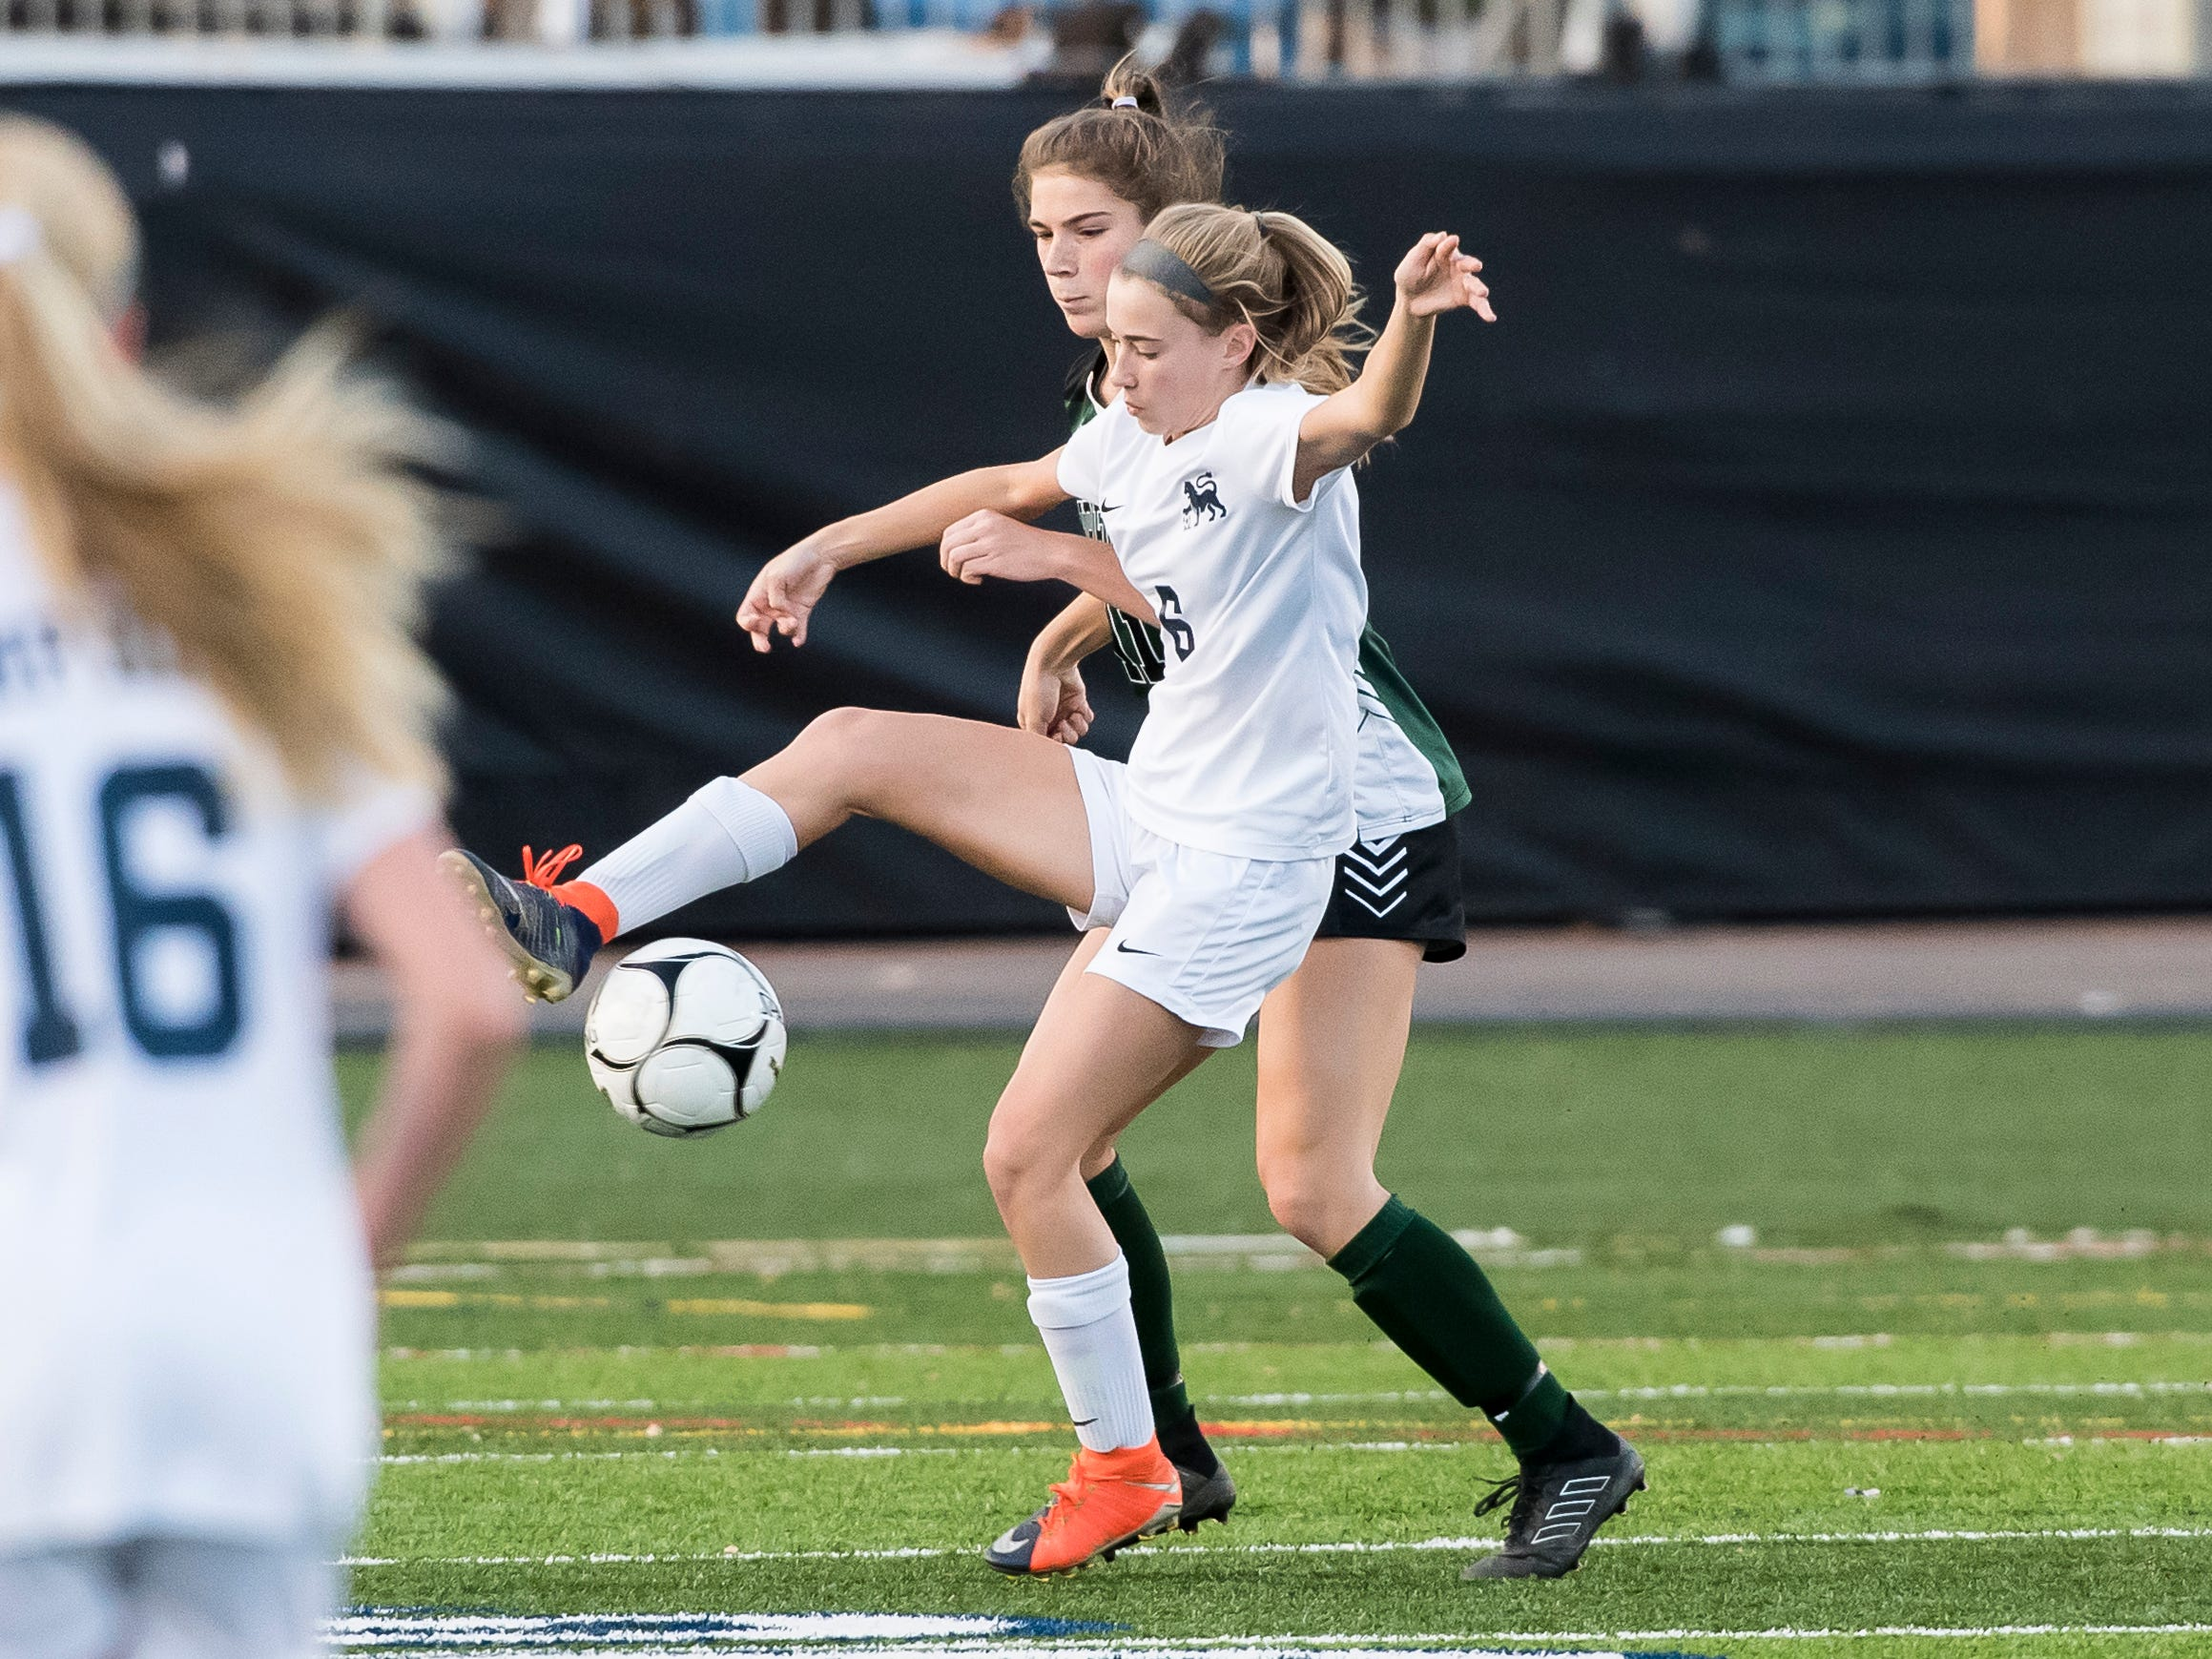 Camp Hill's Ava Brackett and Fairfield's Milly Heinbaugh fight for the ball during the PIAA District III Class A championship game against Fairfield at Hershey Park Stadium on Wednesday, October 31, 2018. The Knights fell 1-0 in overtime.